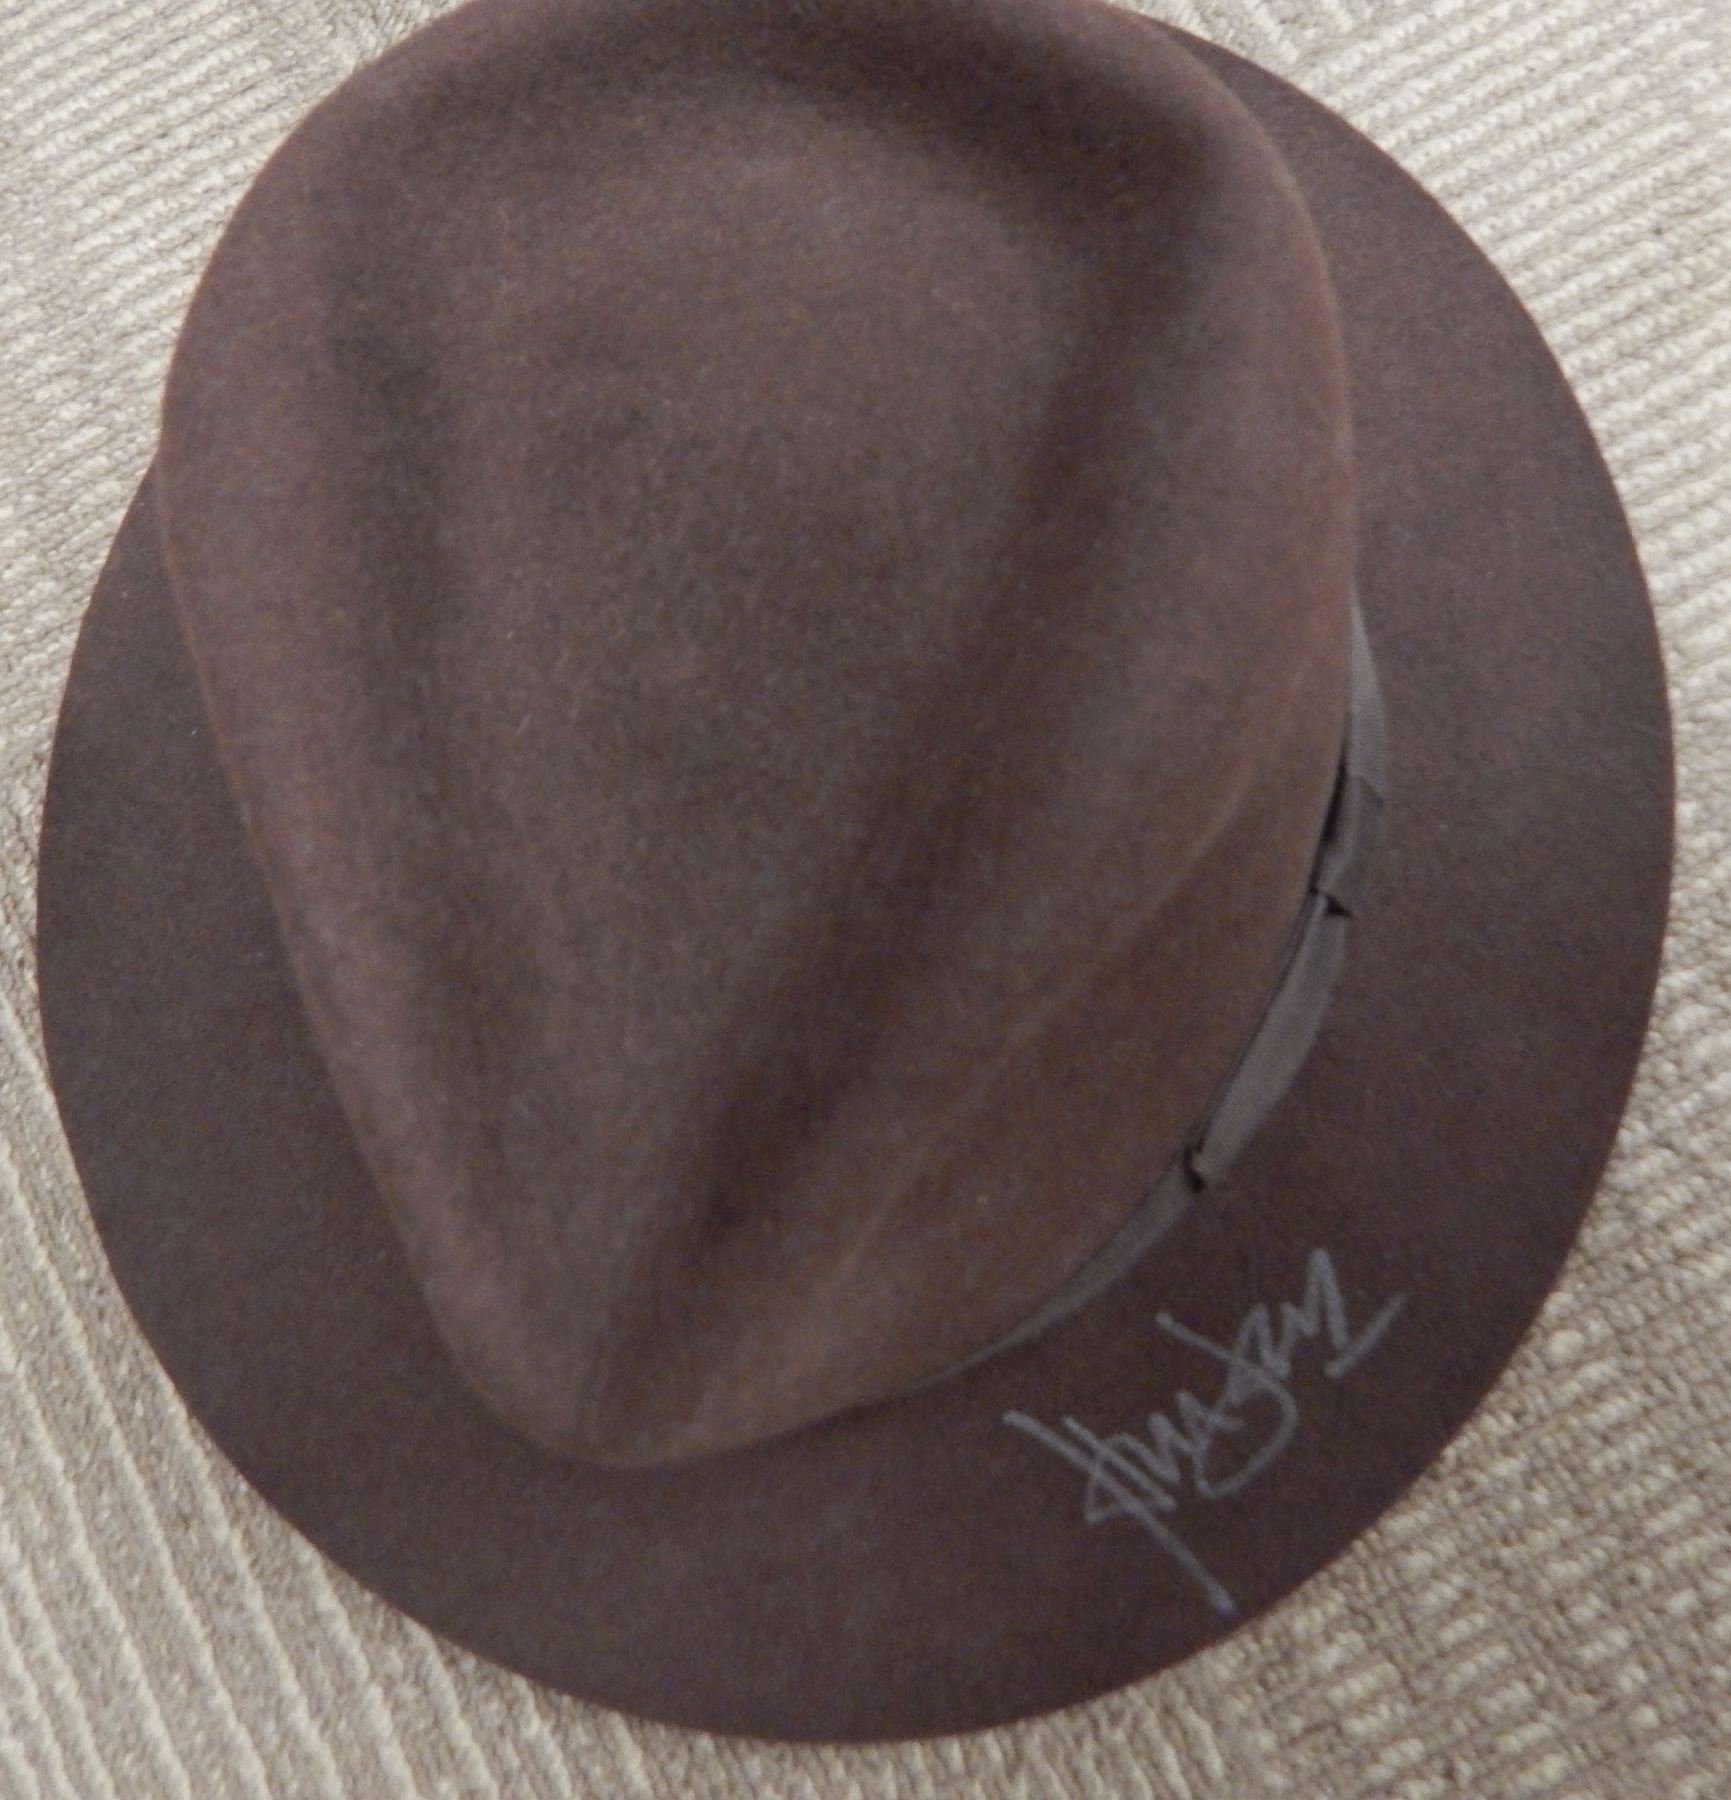 72acfaa2c1fcd ... wholesale harrison ford signed indiana jones hat fad6d bc89d